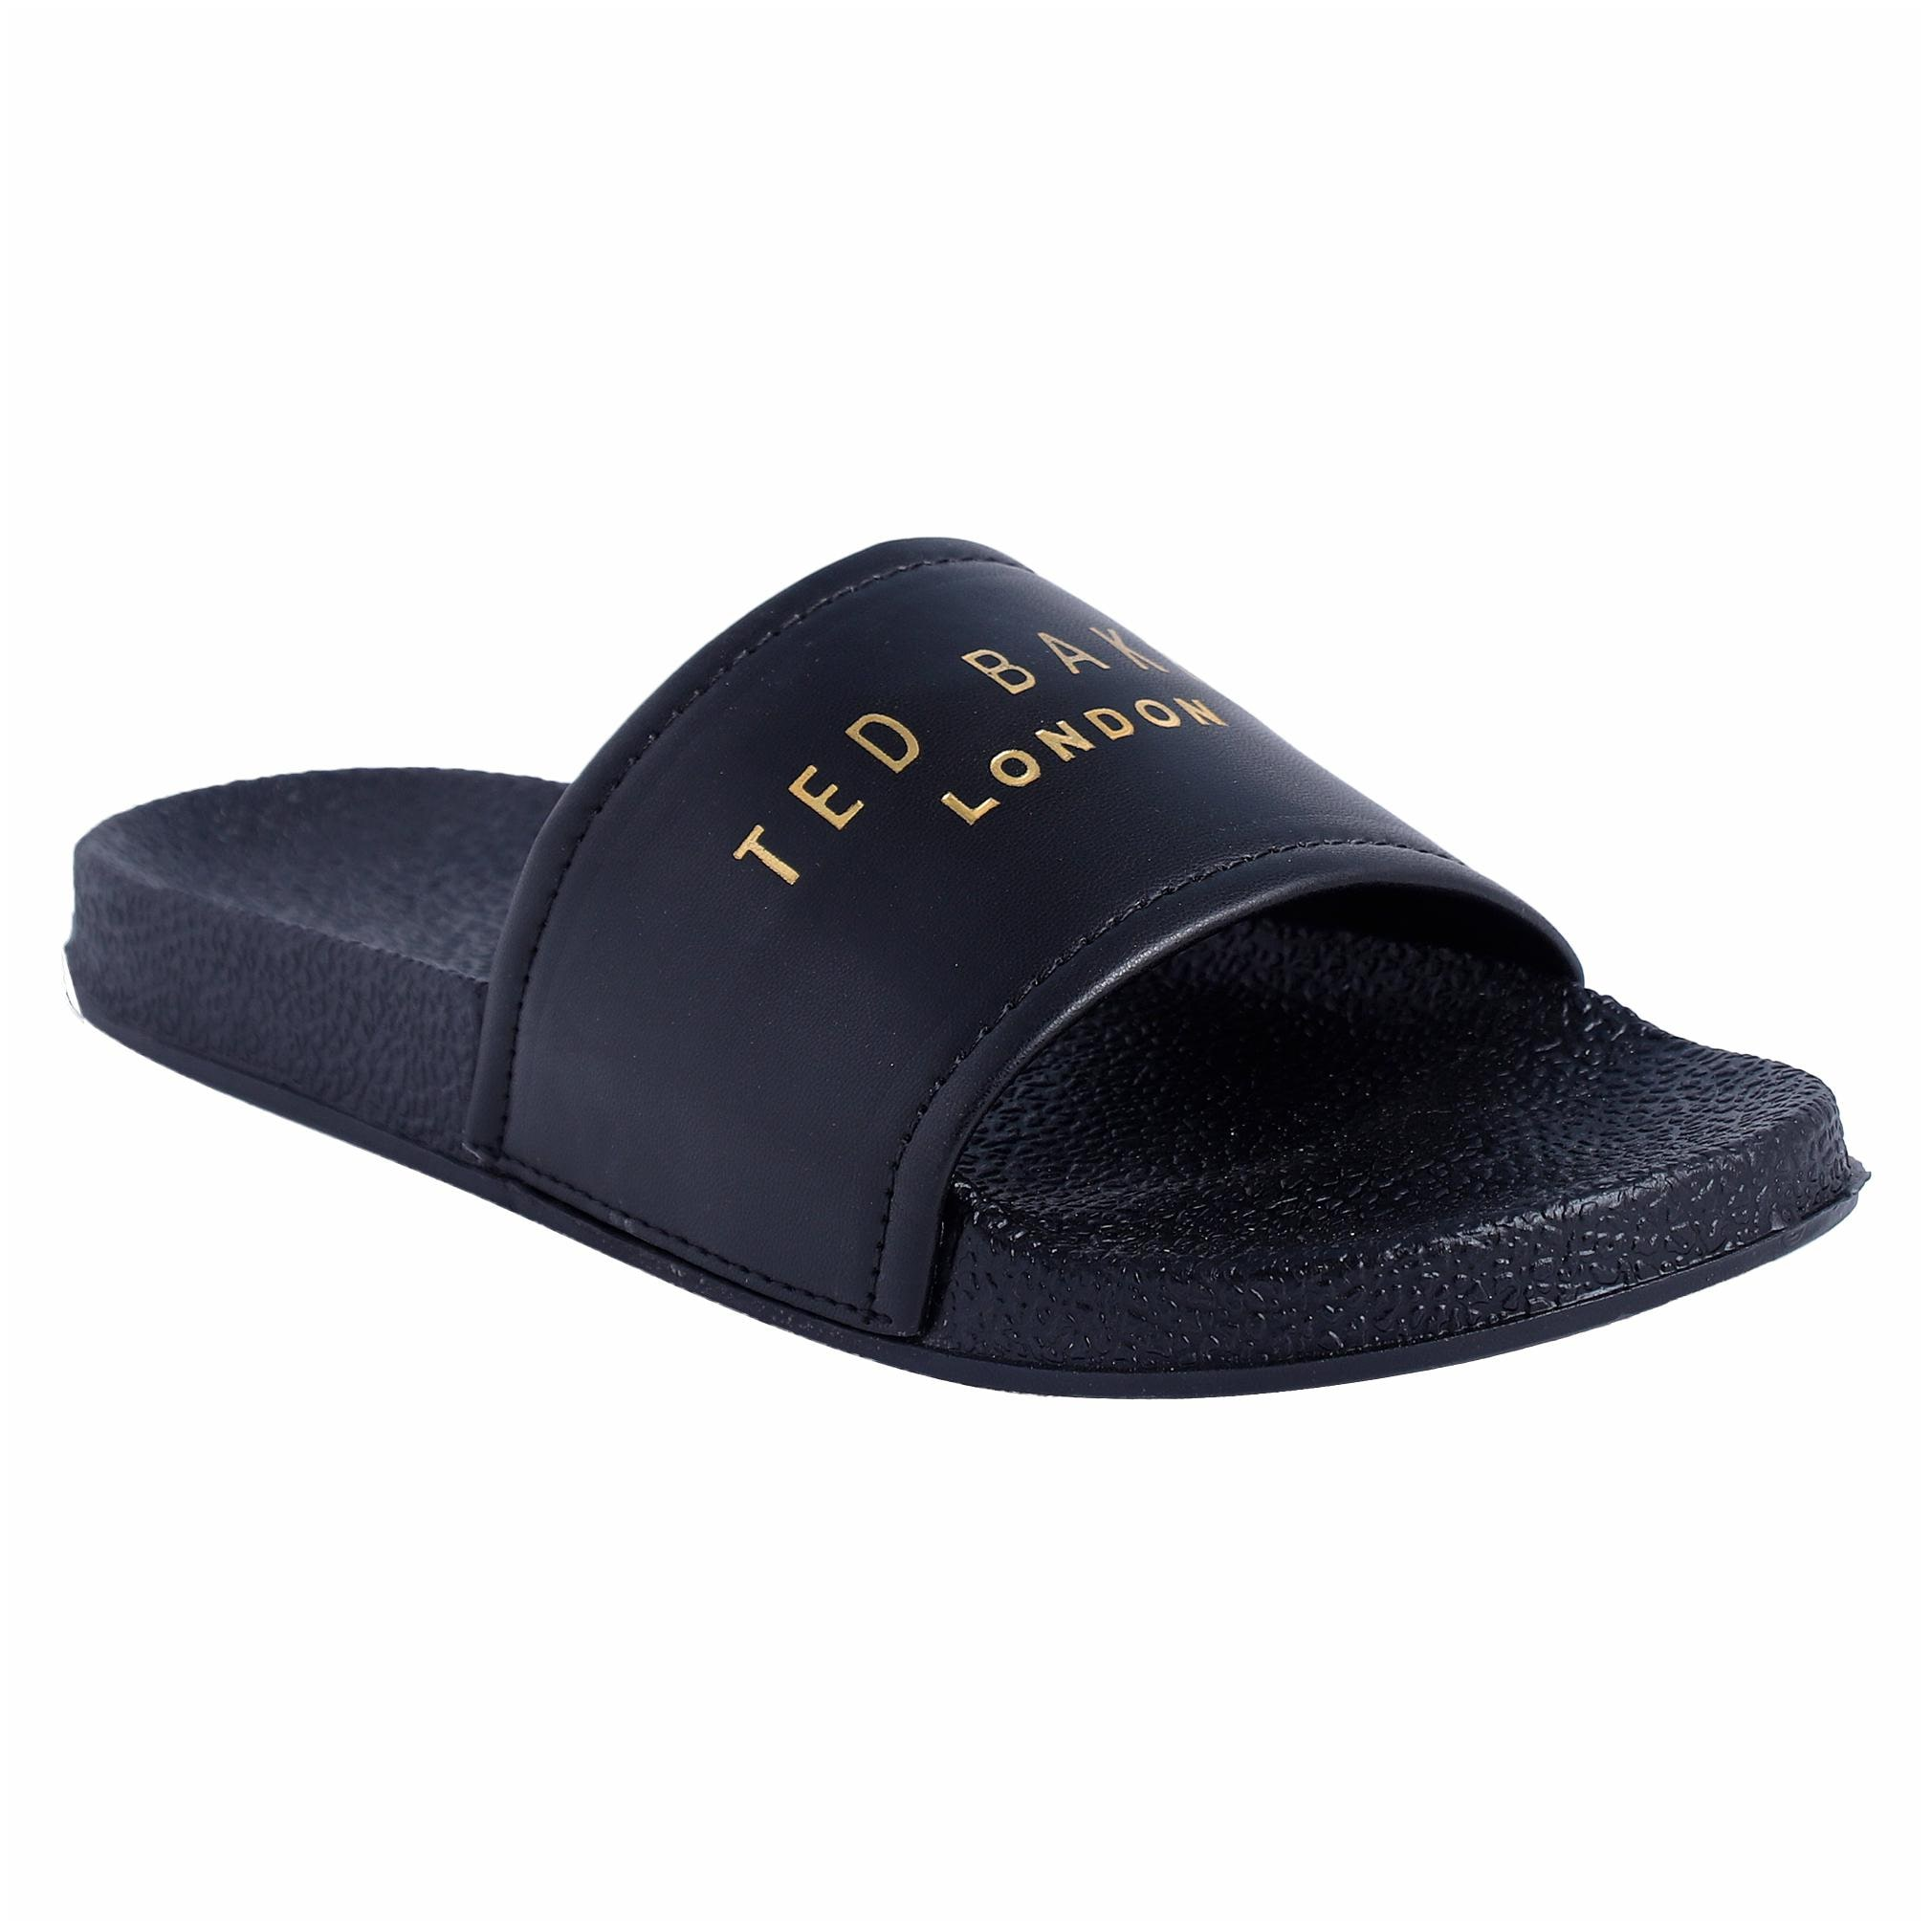 PERY-PAO Men's Black Sliders